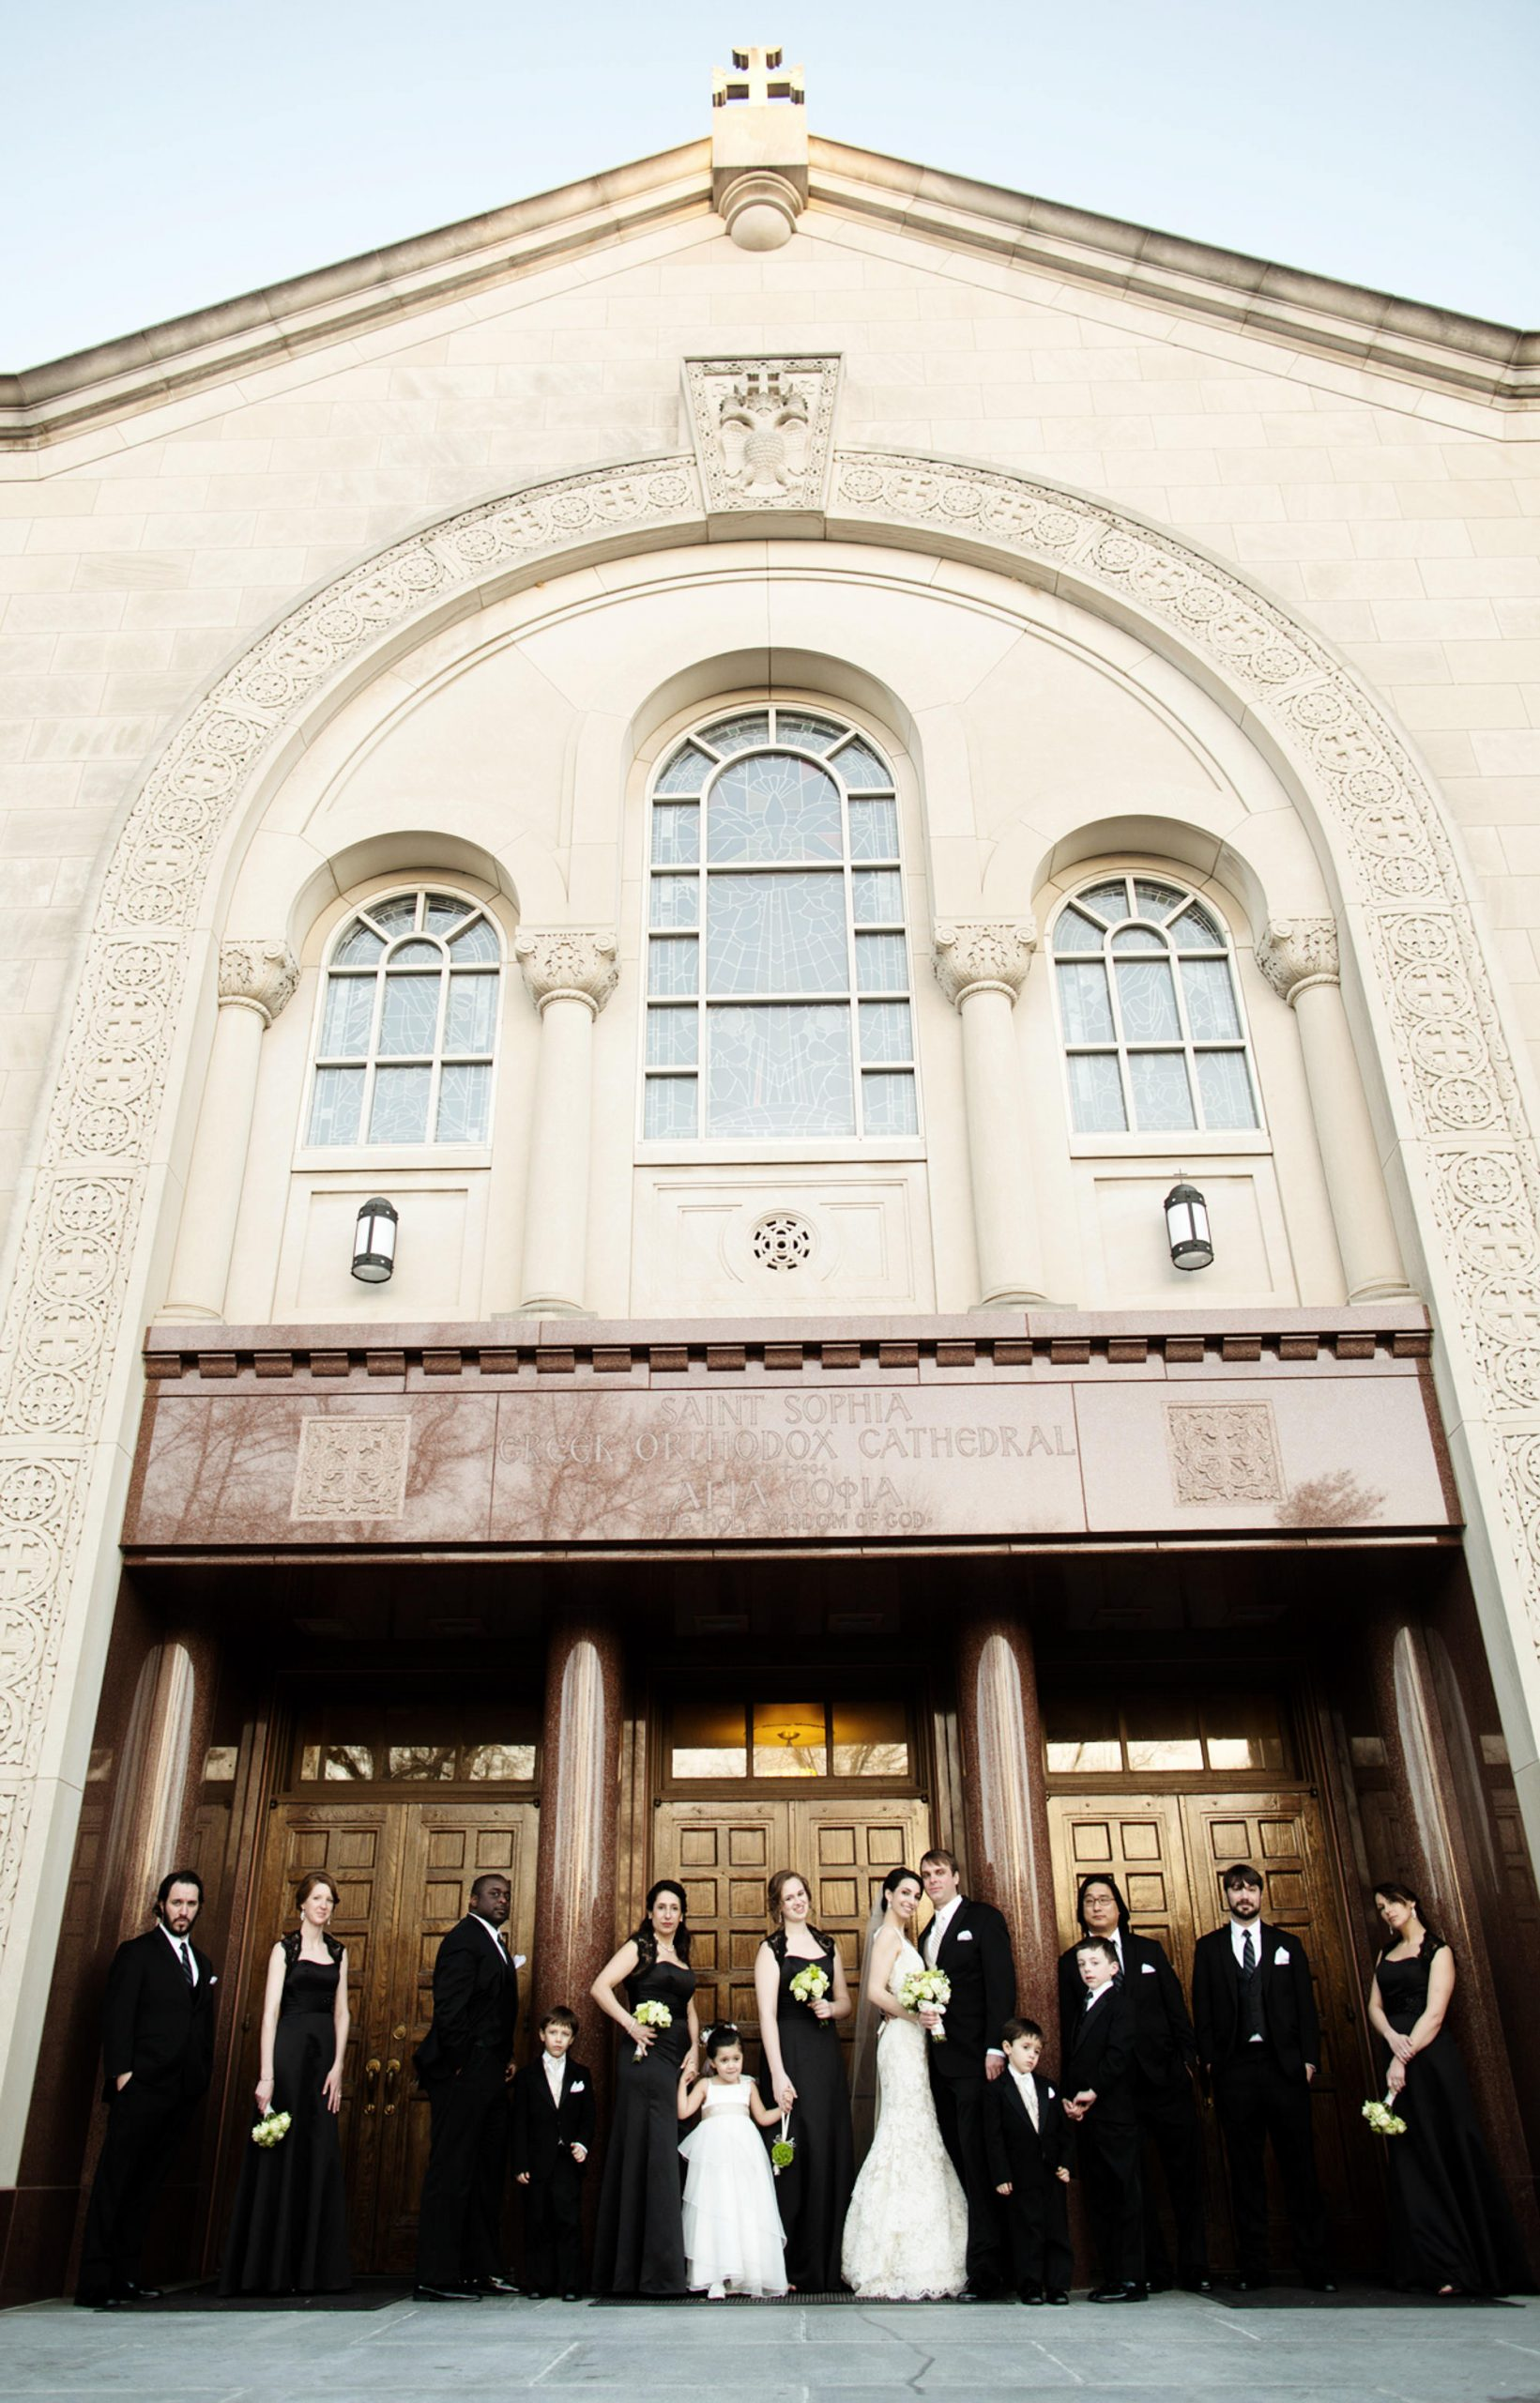 St. Sophia Greek Orthodox Cathedral Wedding  I  The wedding party poses in front of the cathedral in Washington, DC.